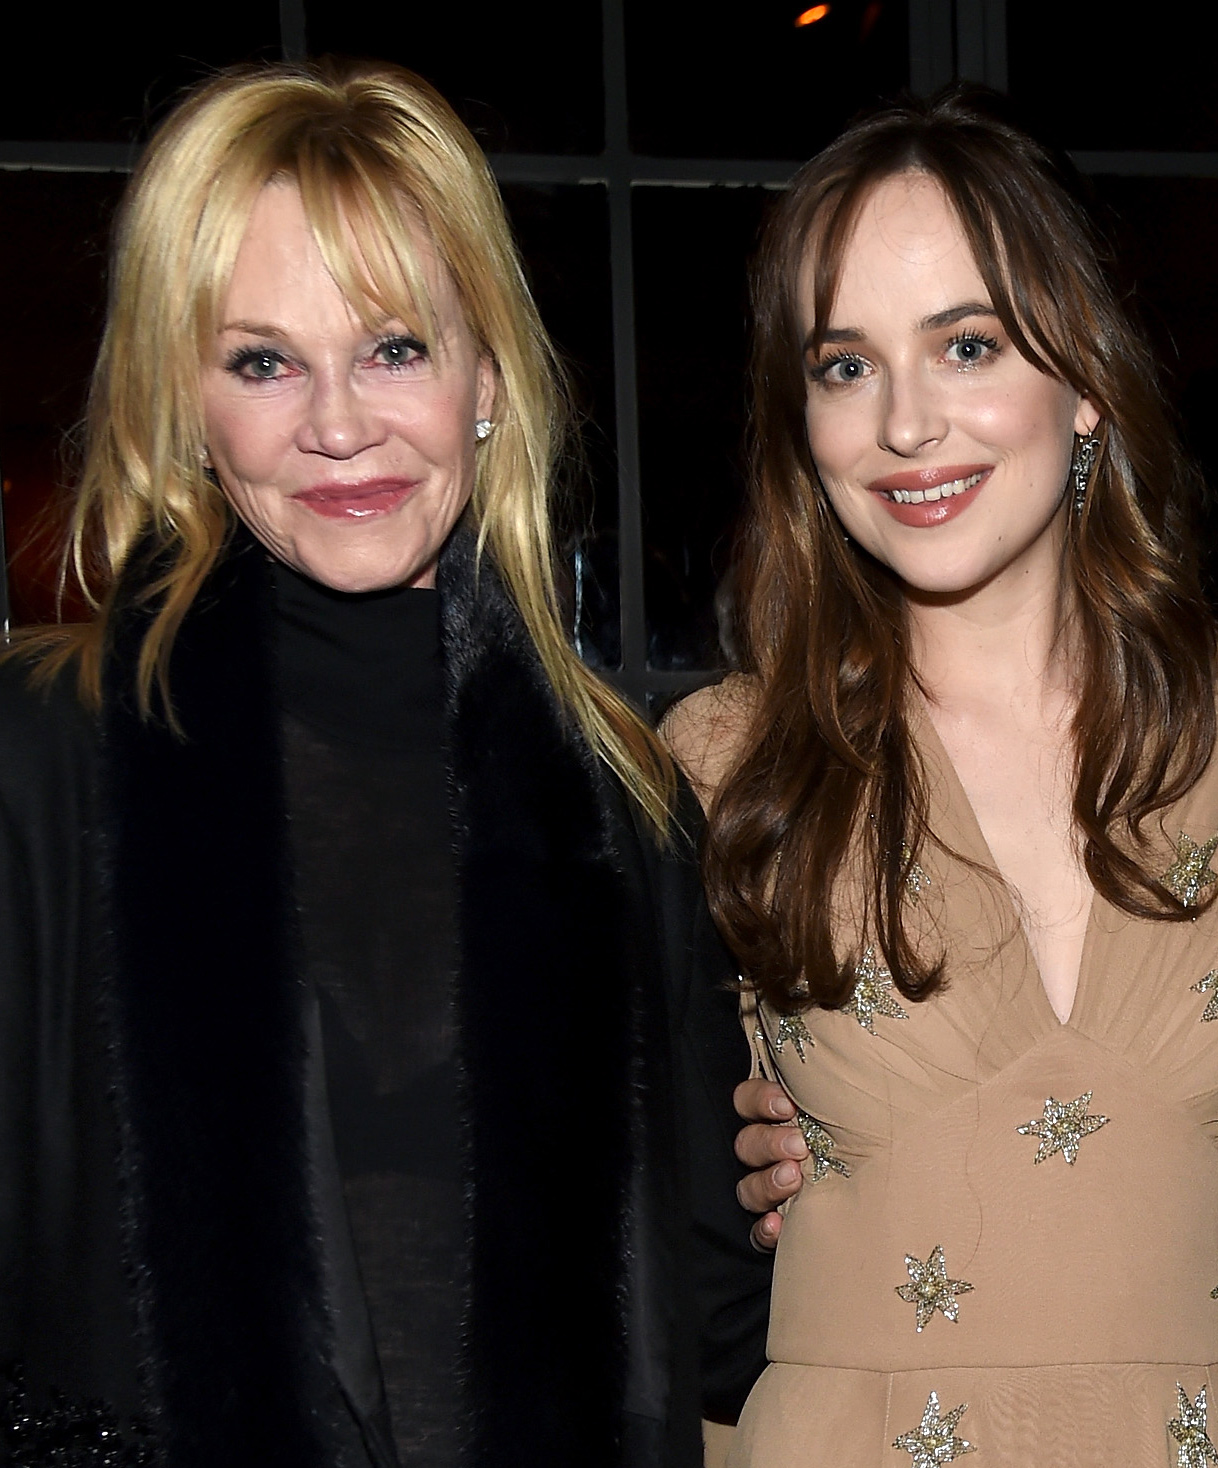 Dakota Johnson and Melanie Griffith - Lead